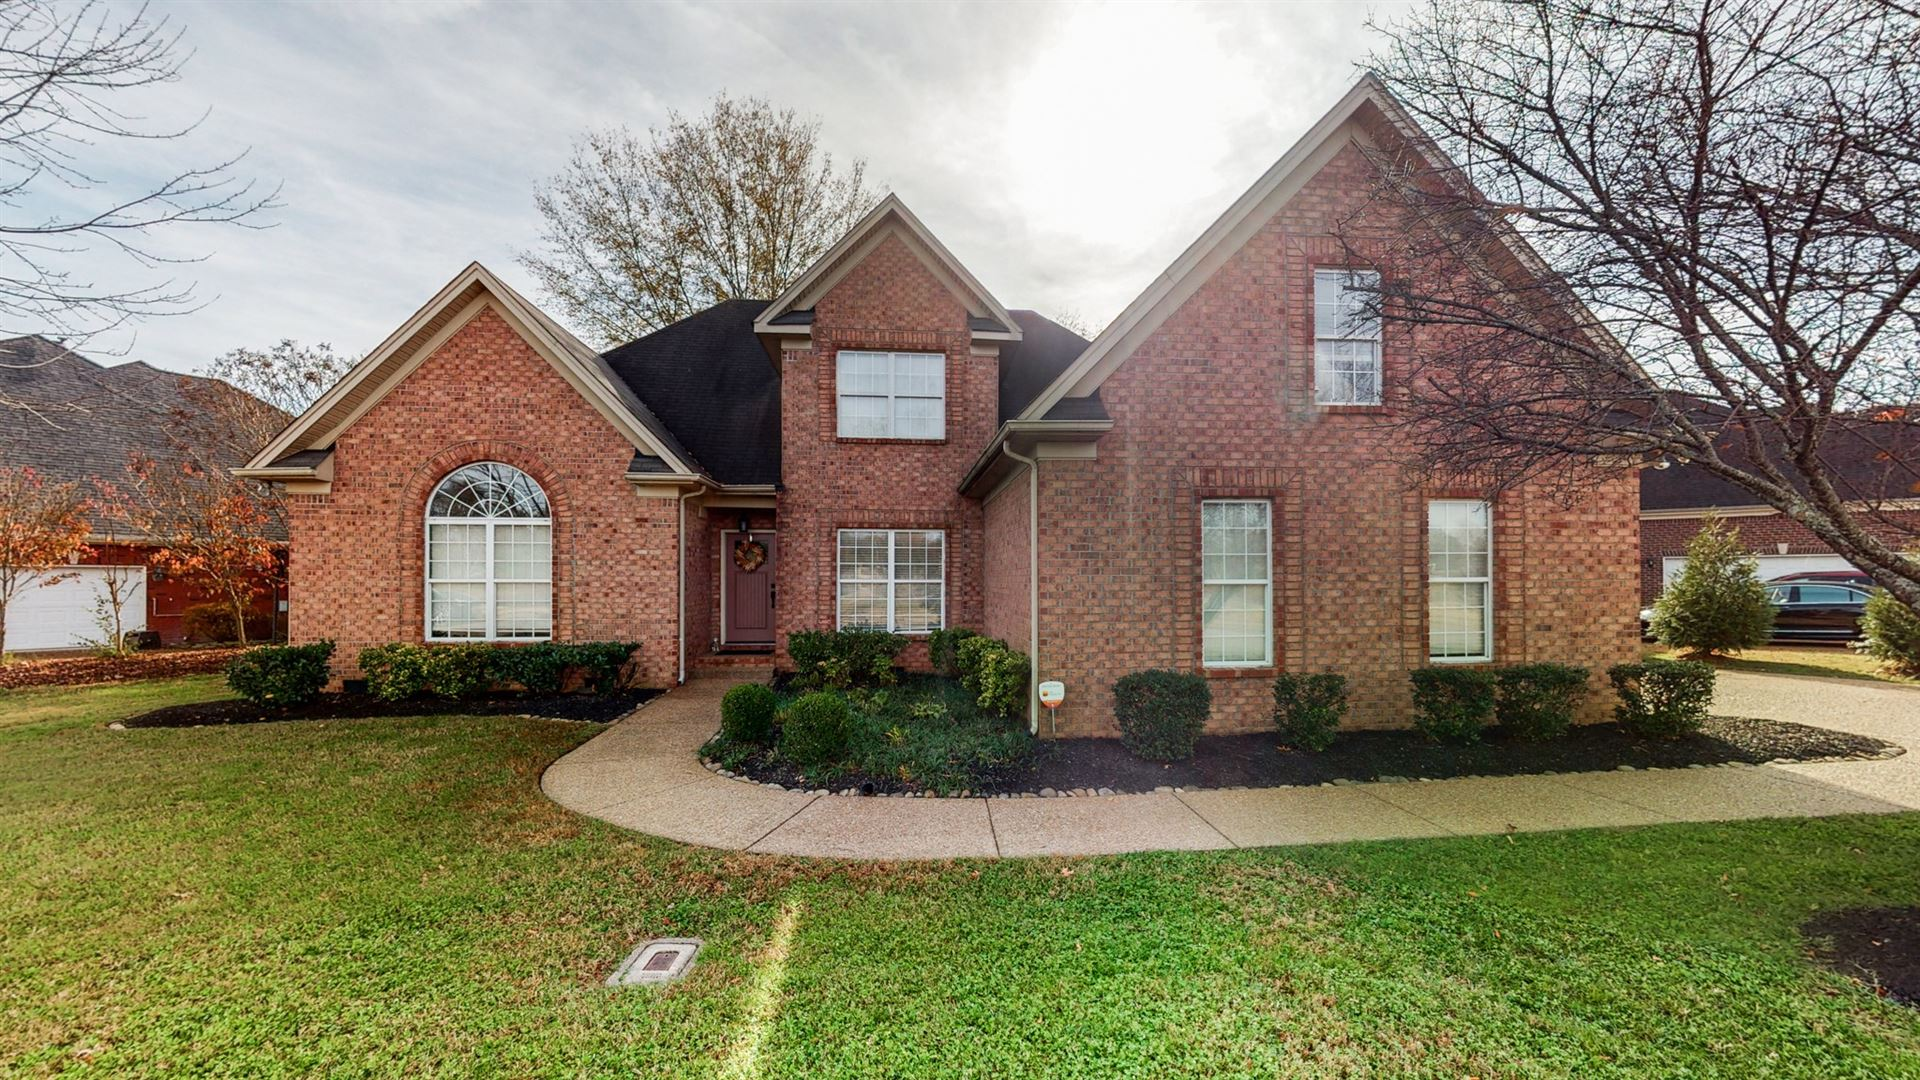 3132 Bishops Way, Franklin, TN 37064 - MLS#: 2208774